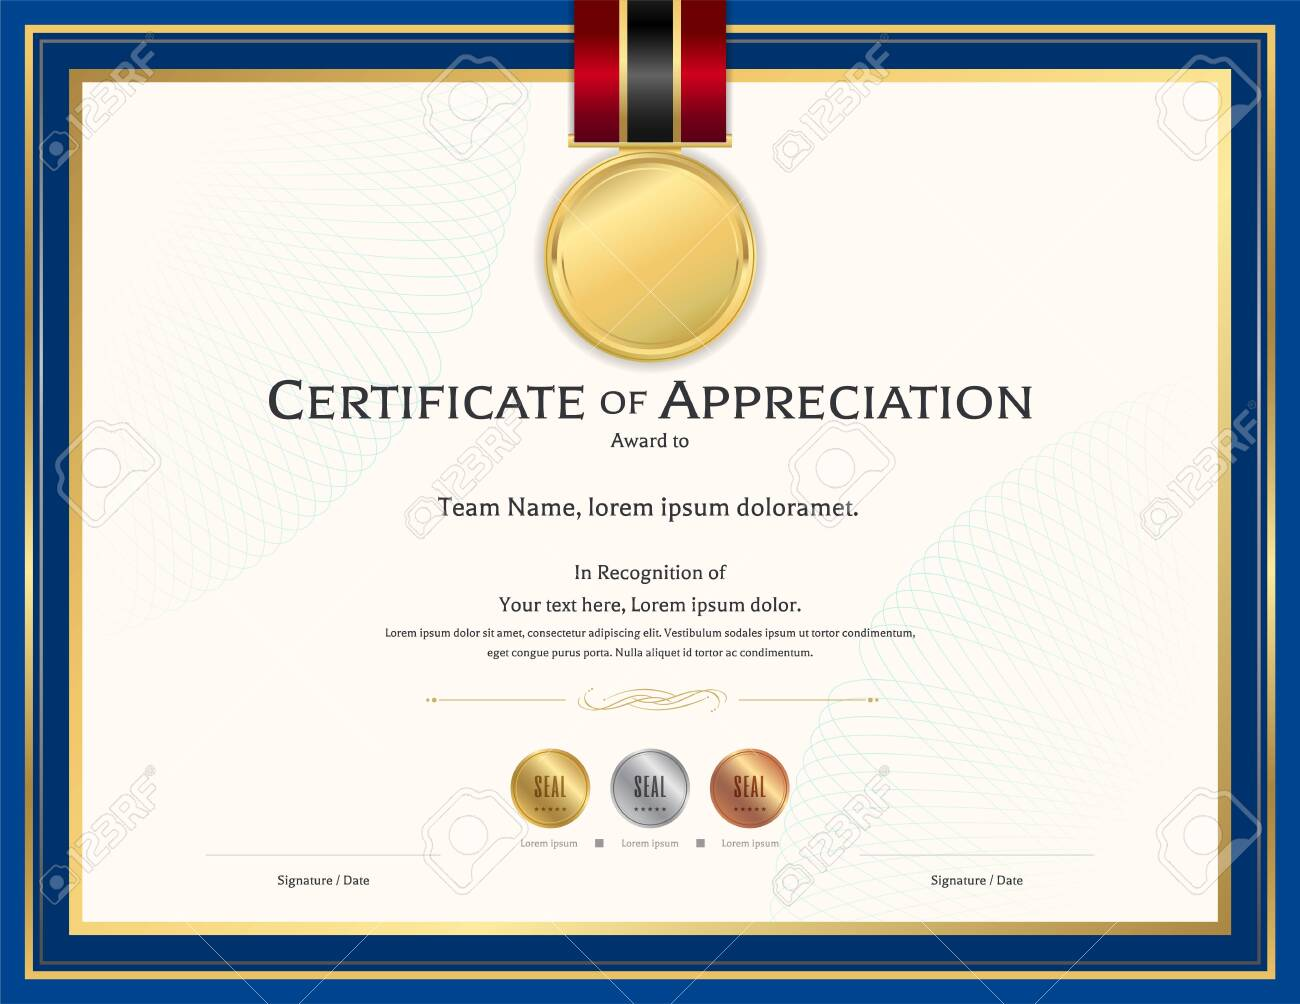 Luxury certificate template with elegant border frame, Diploma design for graduation or completion - 143411715